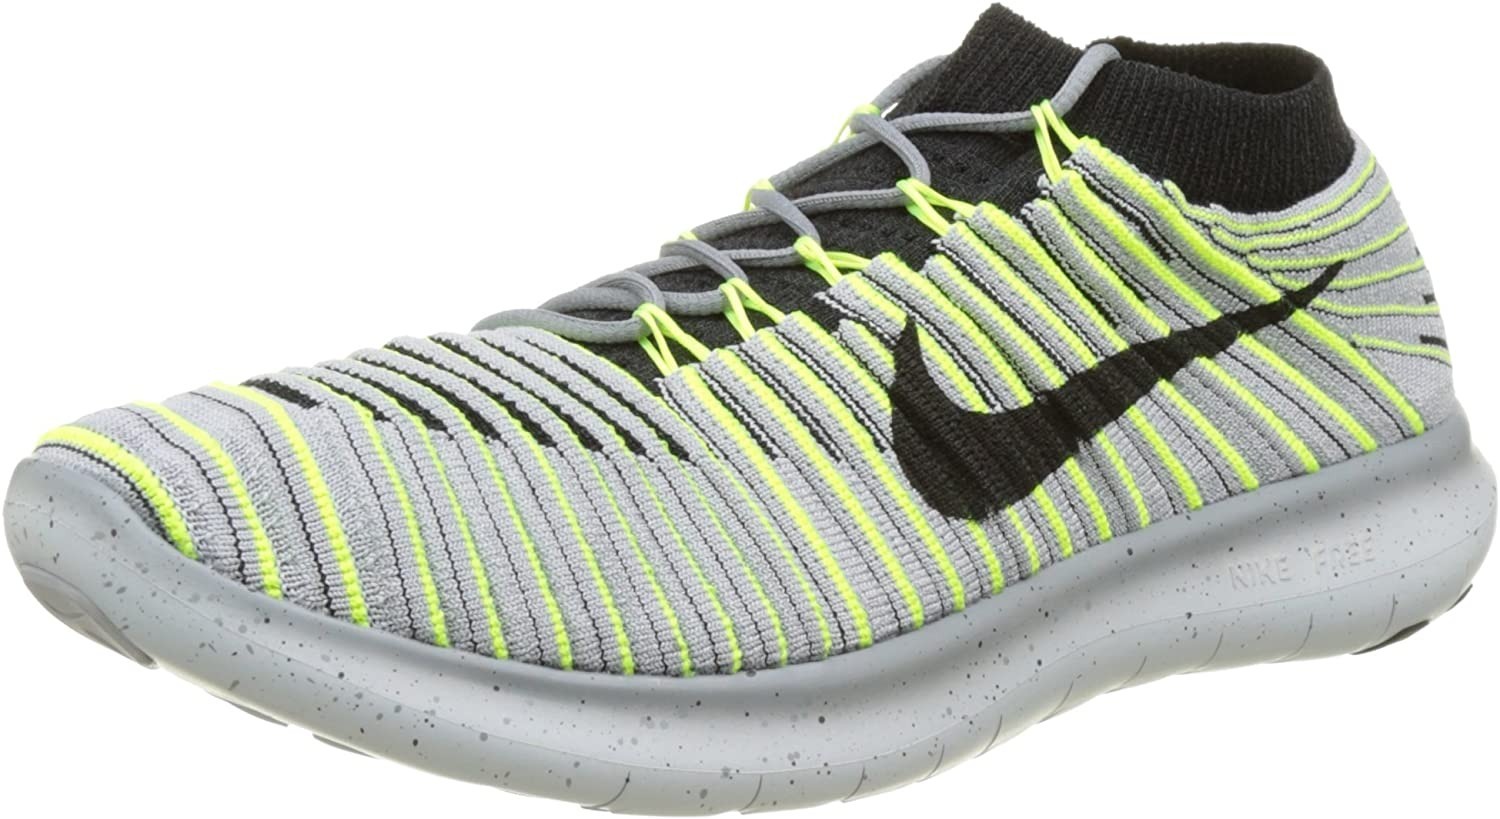 FreeRn Motion Flyknit Running Shoes